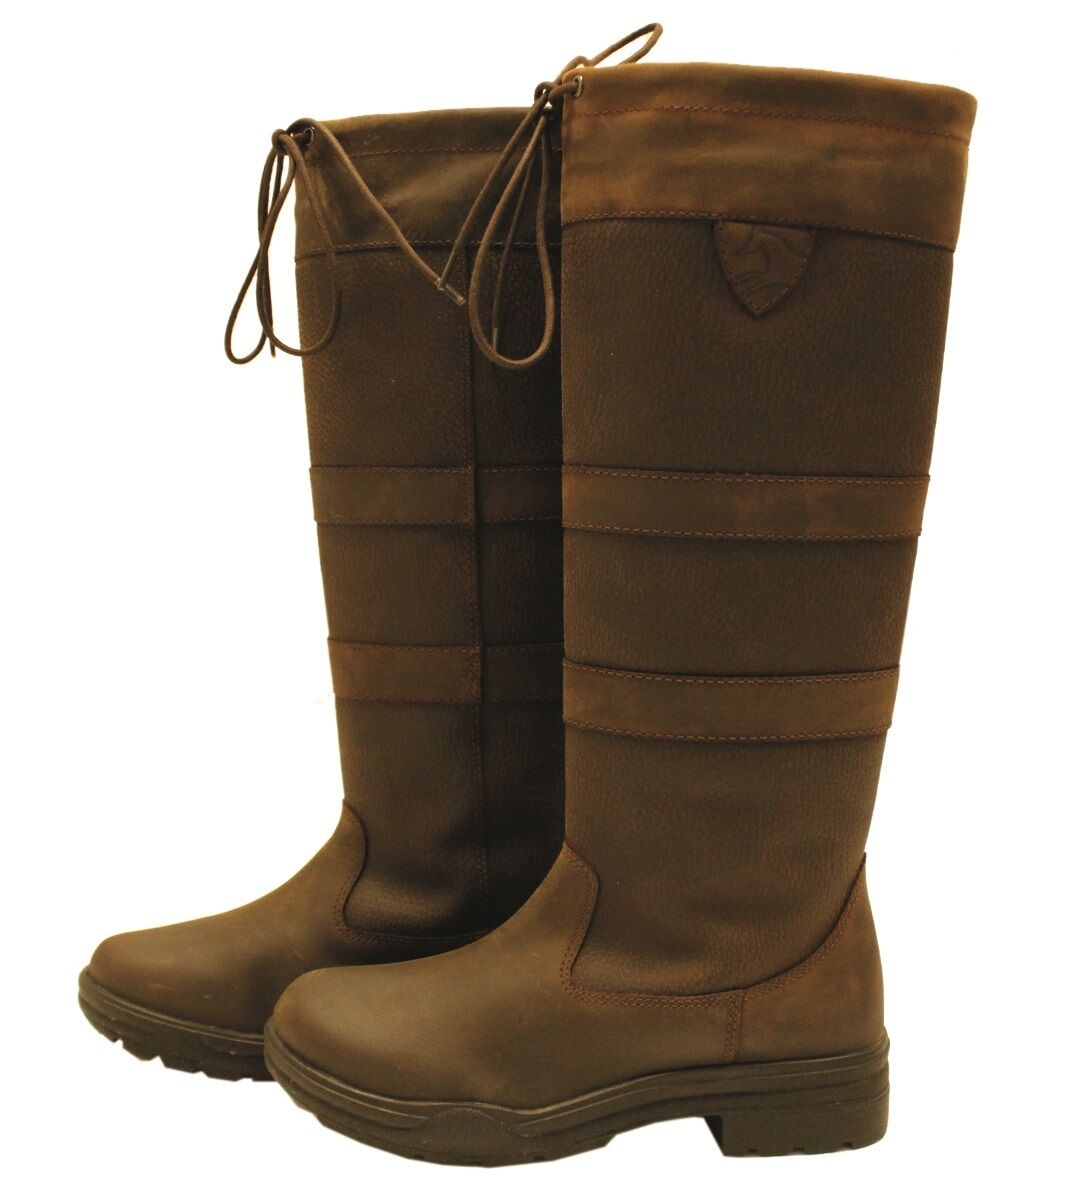 Horseware Long Country Boot Tall Waterproof Country  Yard Boots Brown  classic style